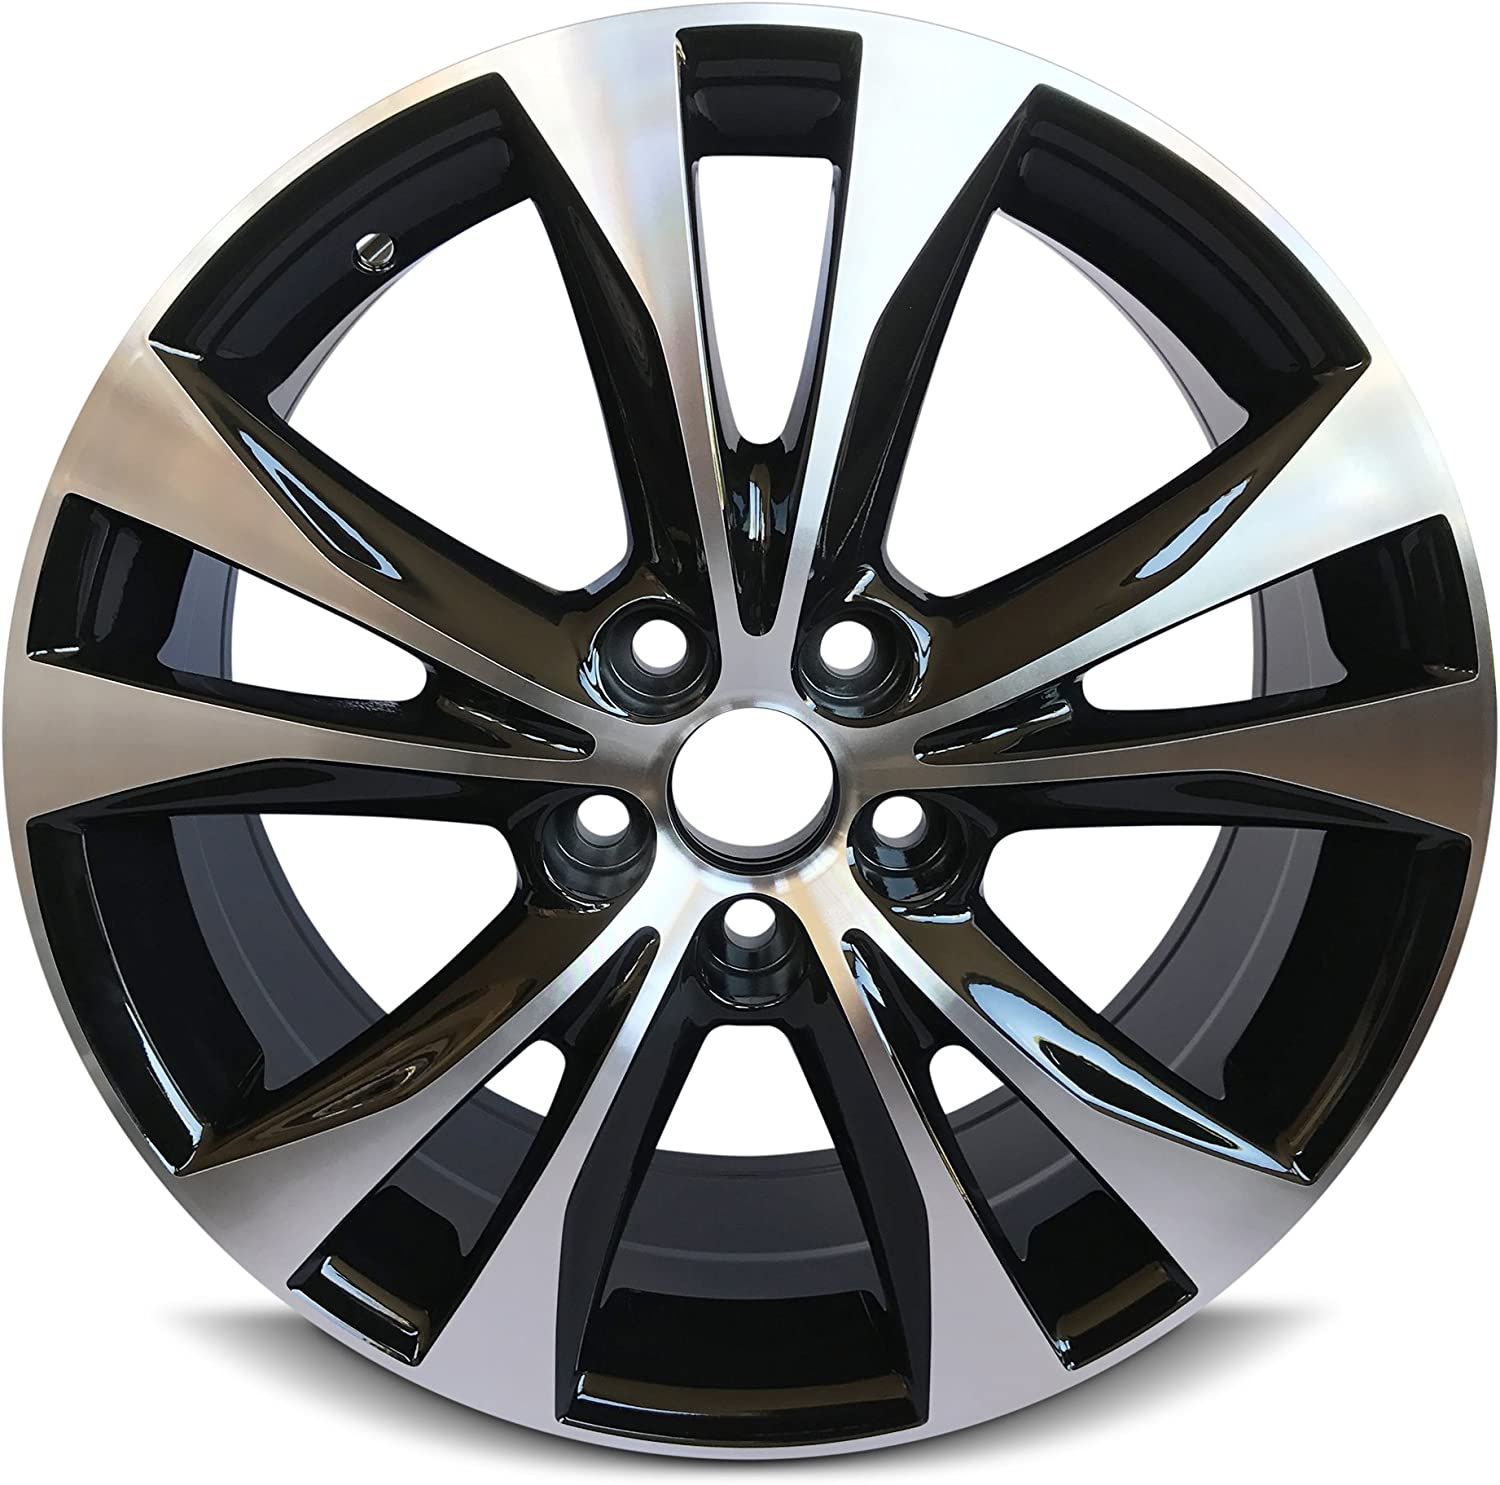 18 Inch Tires >> Road Ready Car Wheel For 2013 2015 Toyota Rav4 18 Inch 5 Lug Gray Aluminum Rim Fits R18 Tire Exact Oem Replacement Full Size Spar